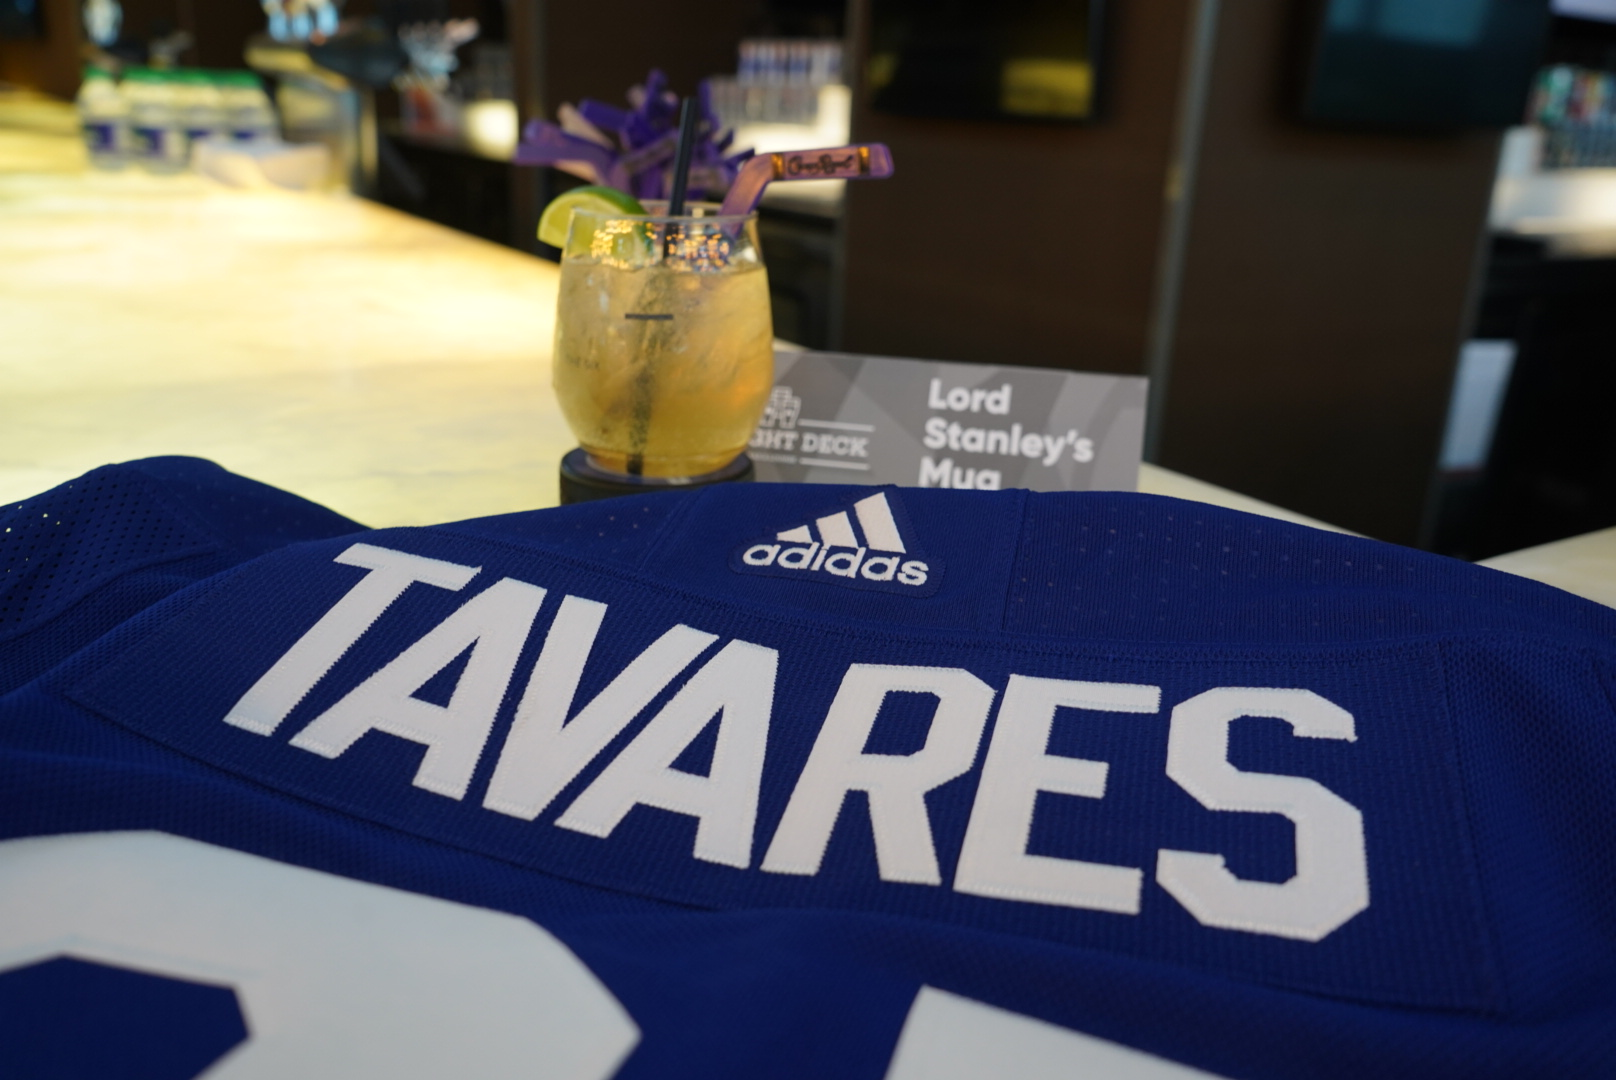 Lord Stanley's Mug Cocktail with a John Tavares Leafs Jersey (Draught Deck)